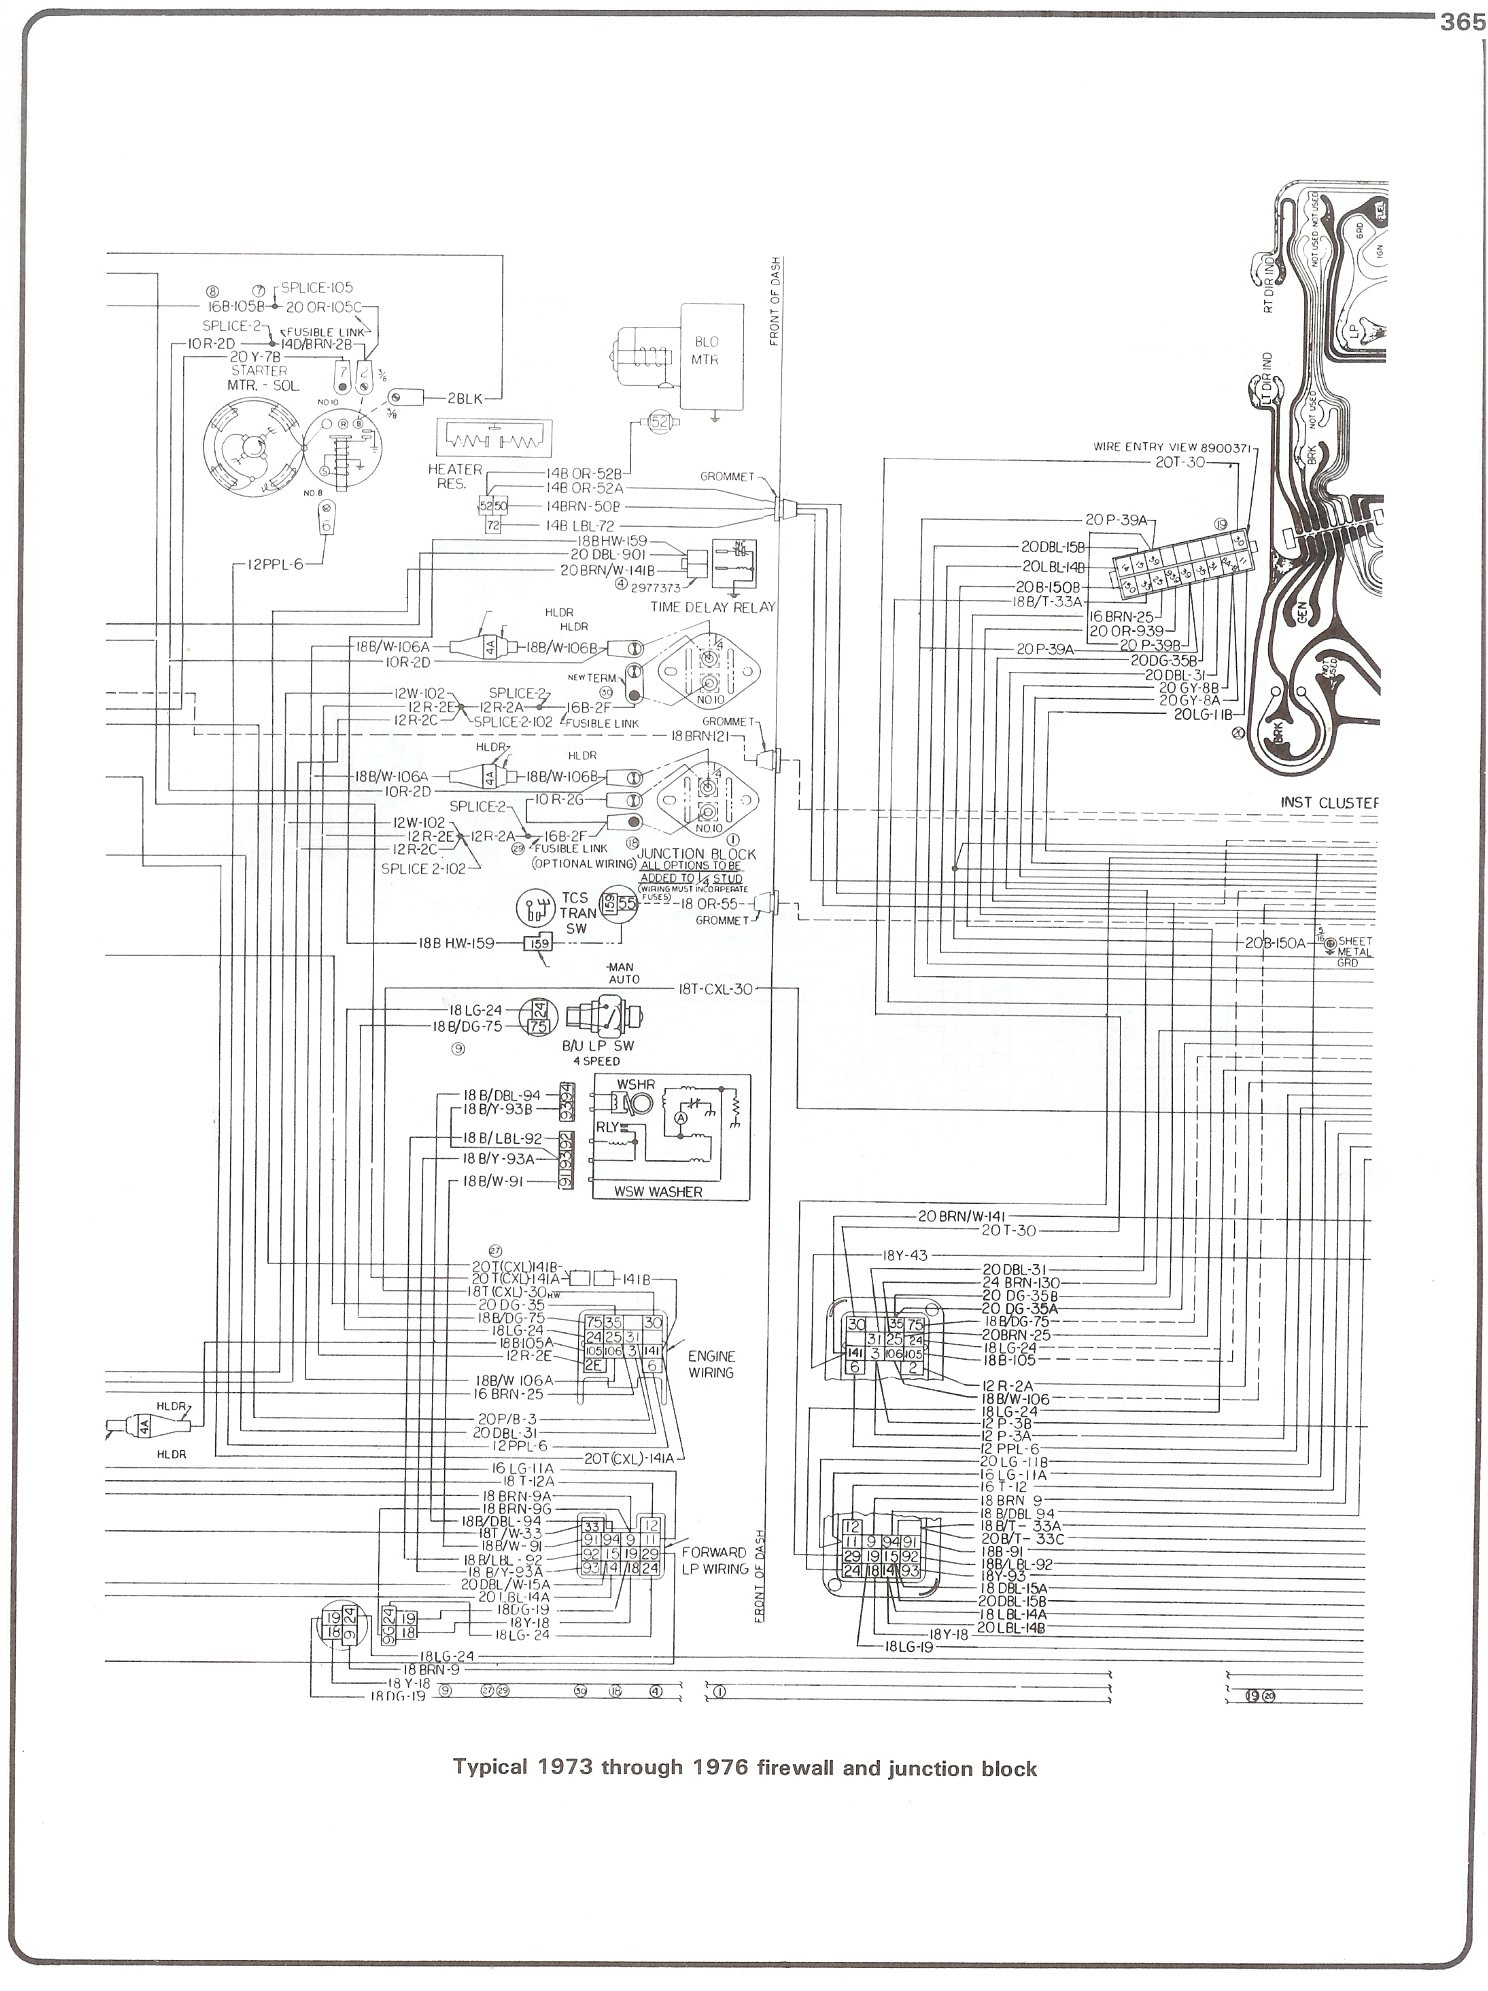 1979 C10 Wiring Diagram Electronic Diagrams 78 Scottsdale Headlight Complete 73 87 79 Chevy Truck